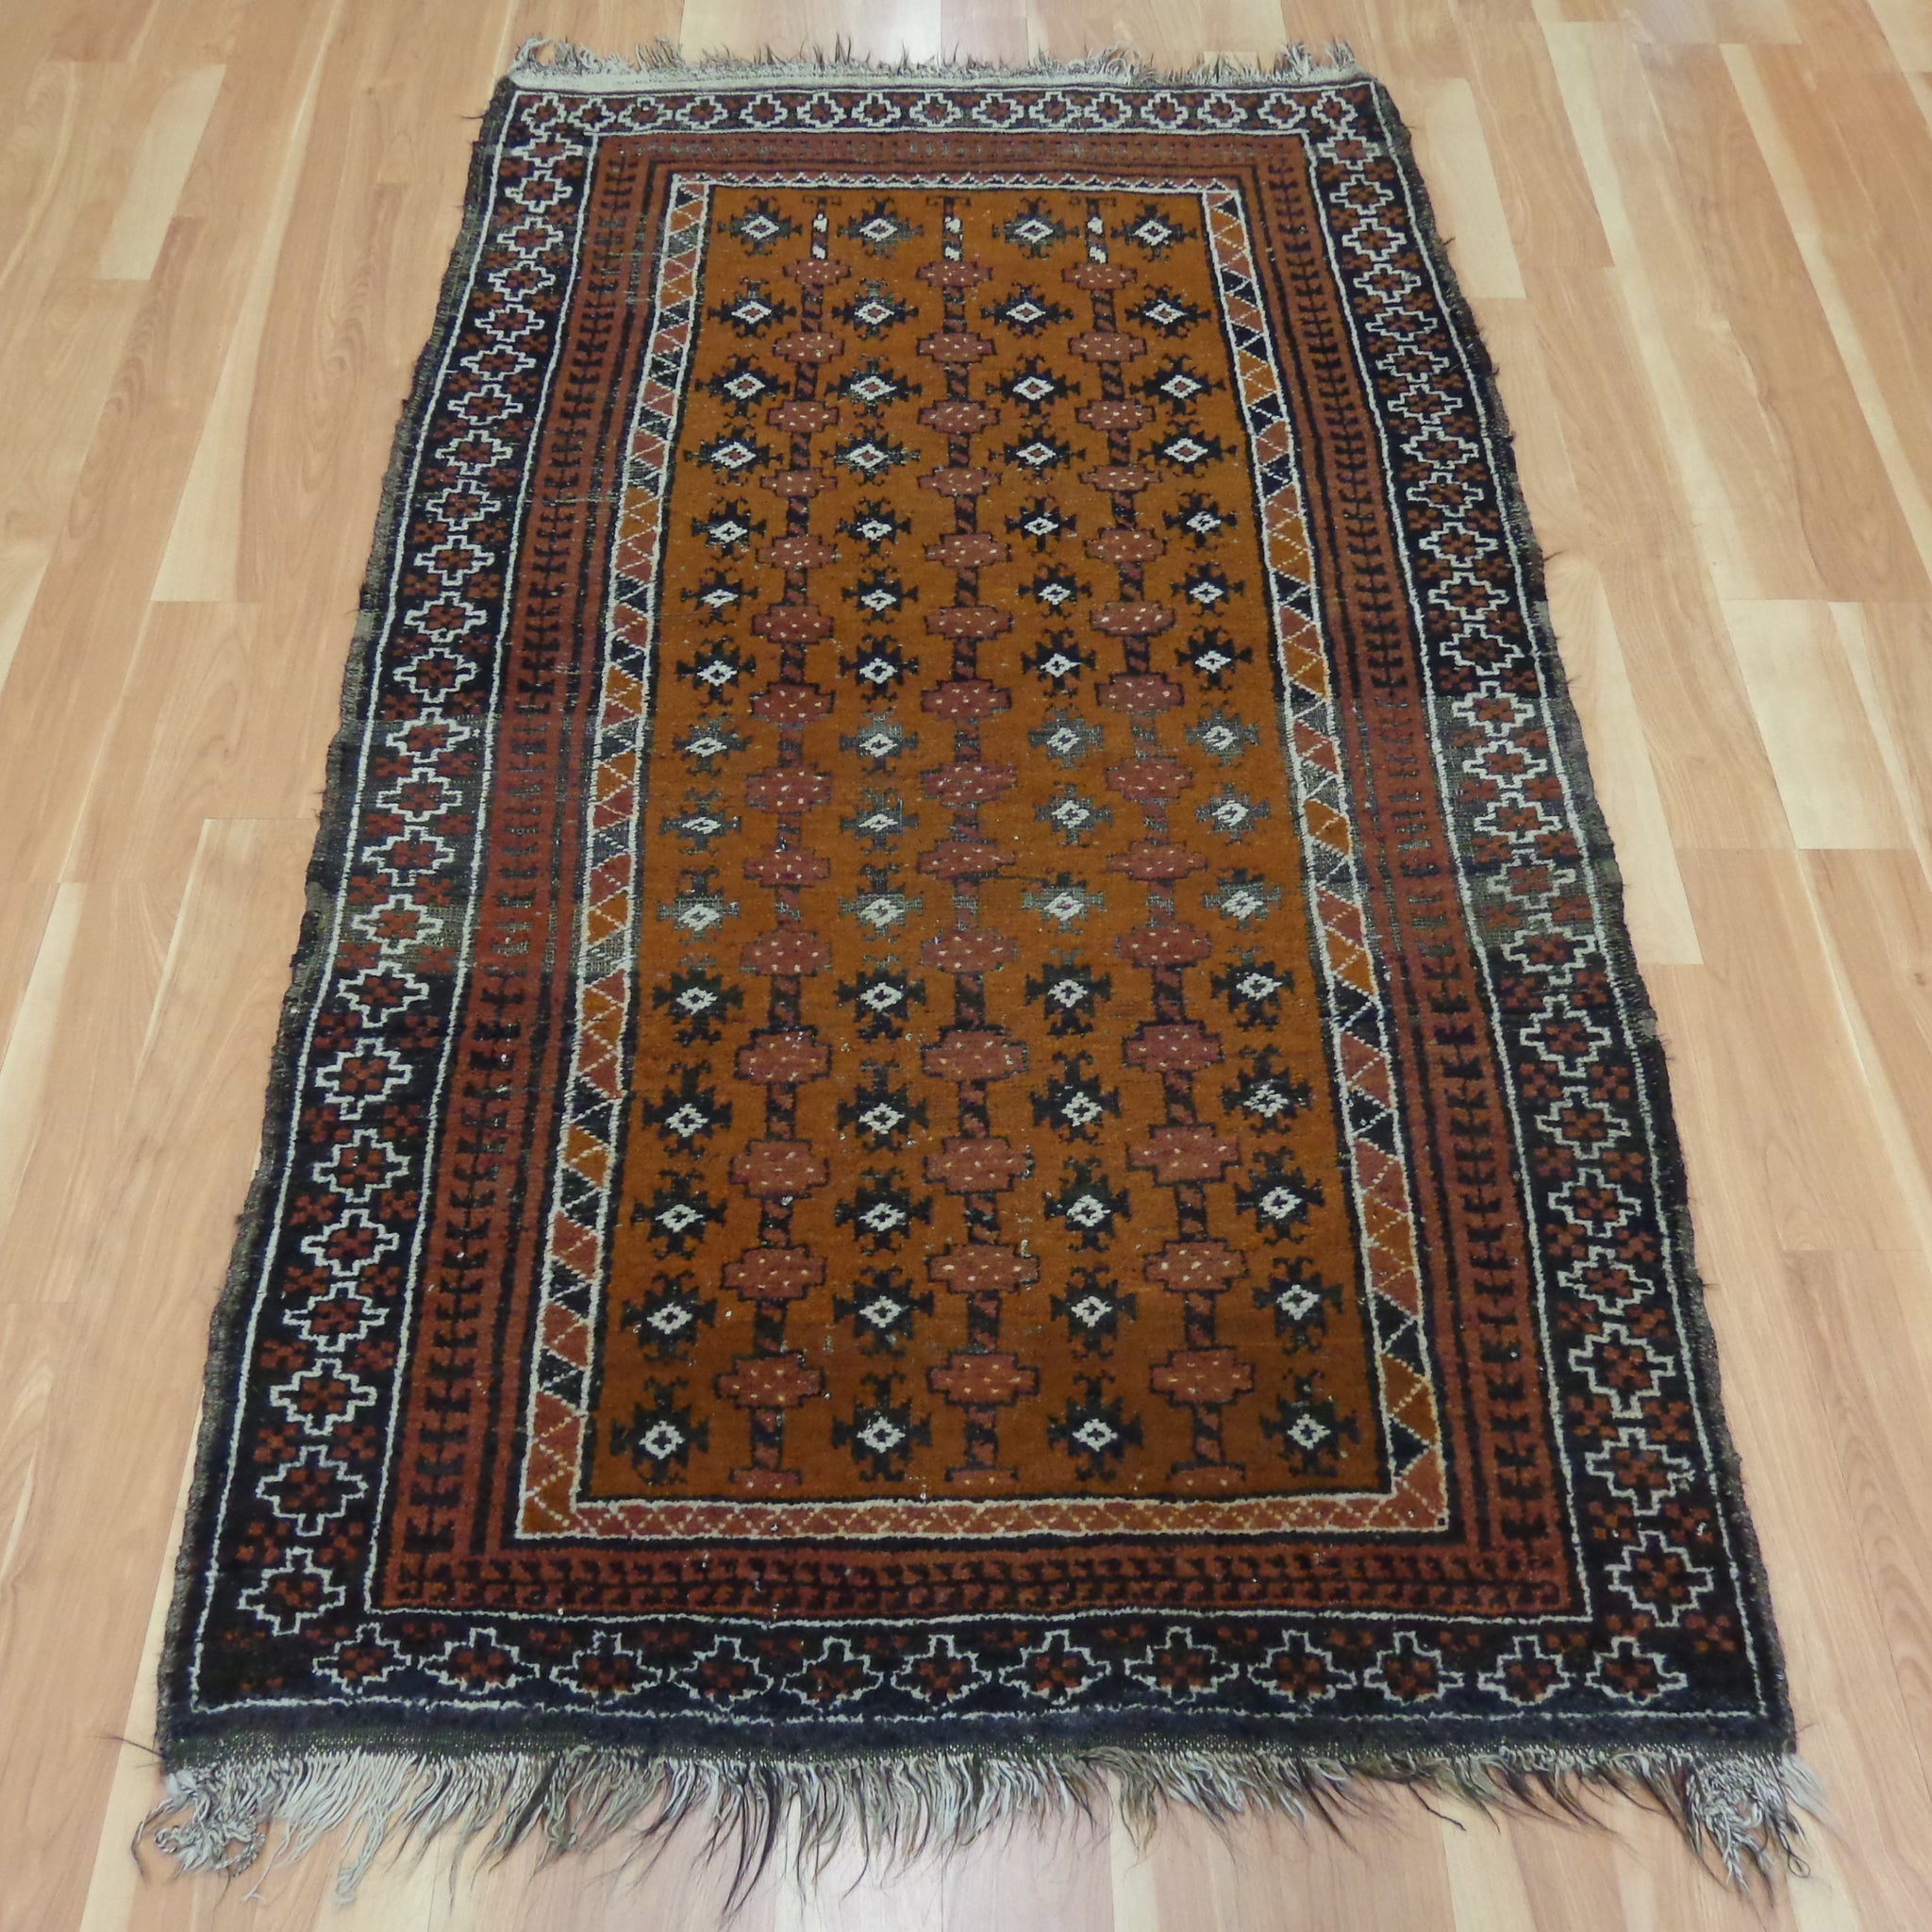 caucasus rug favorites arts emac medallion index tribal pile woven antique wool to add keivan rugs